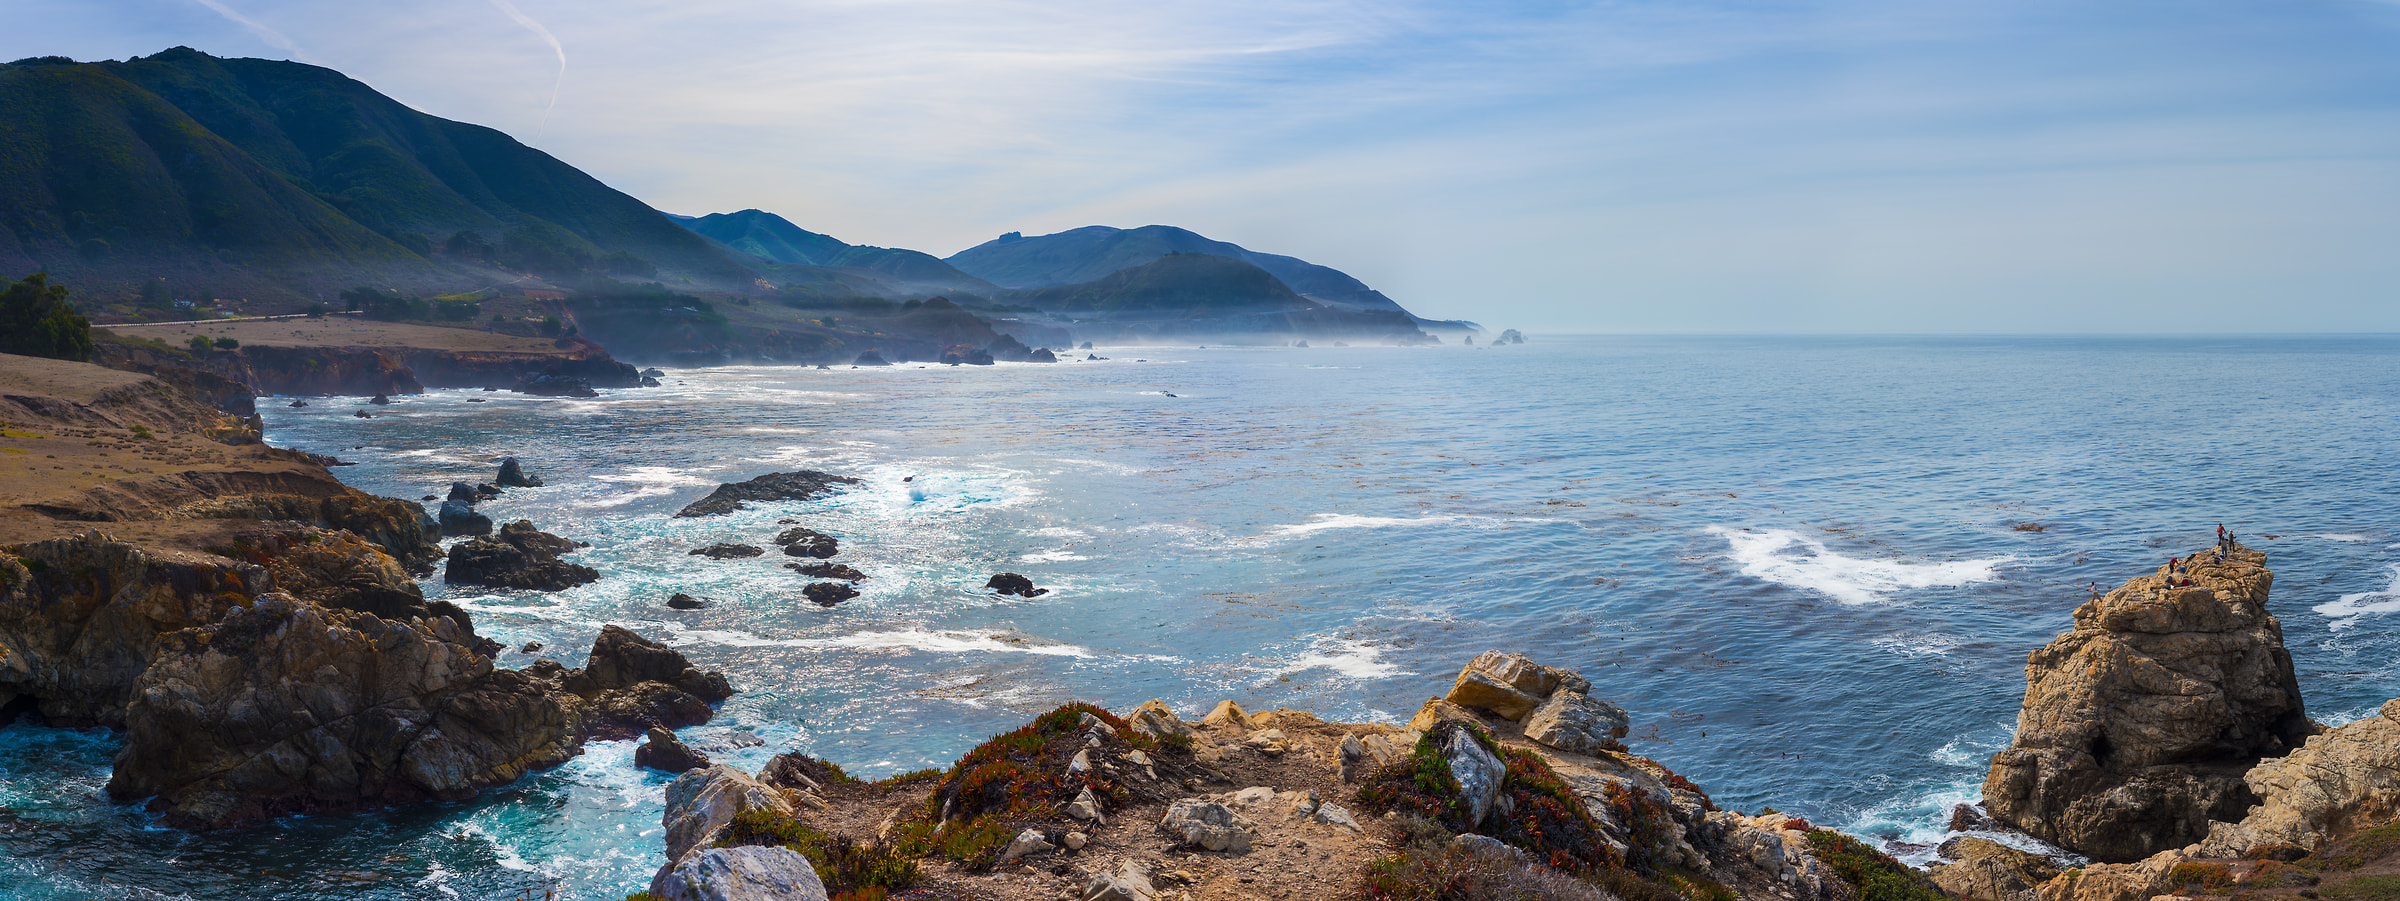 342 megapixels! A very high resolution, large-format VAST photo print of the Big Sur coastline and the Pacific Ocean; seascape photograph created by Jim Tarpo in Big Sur, California